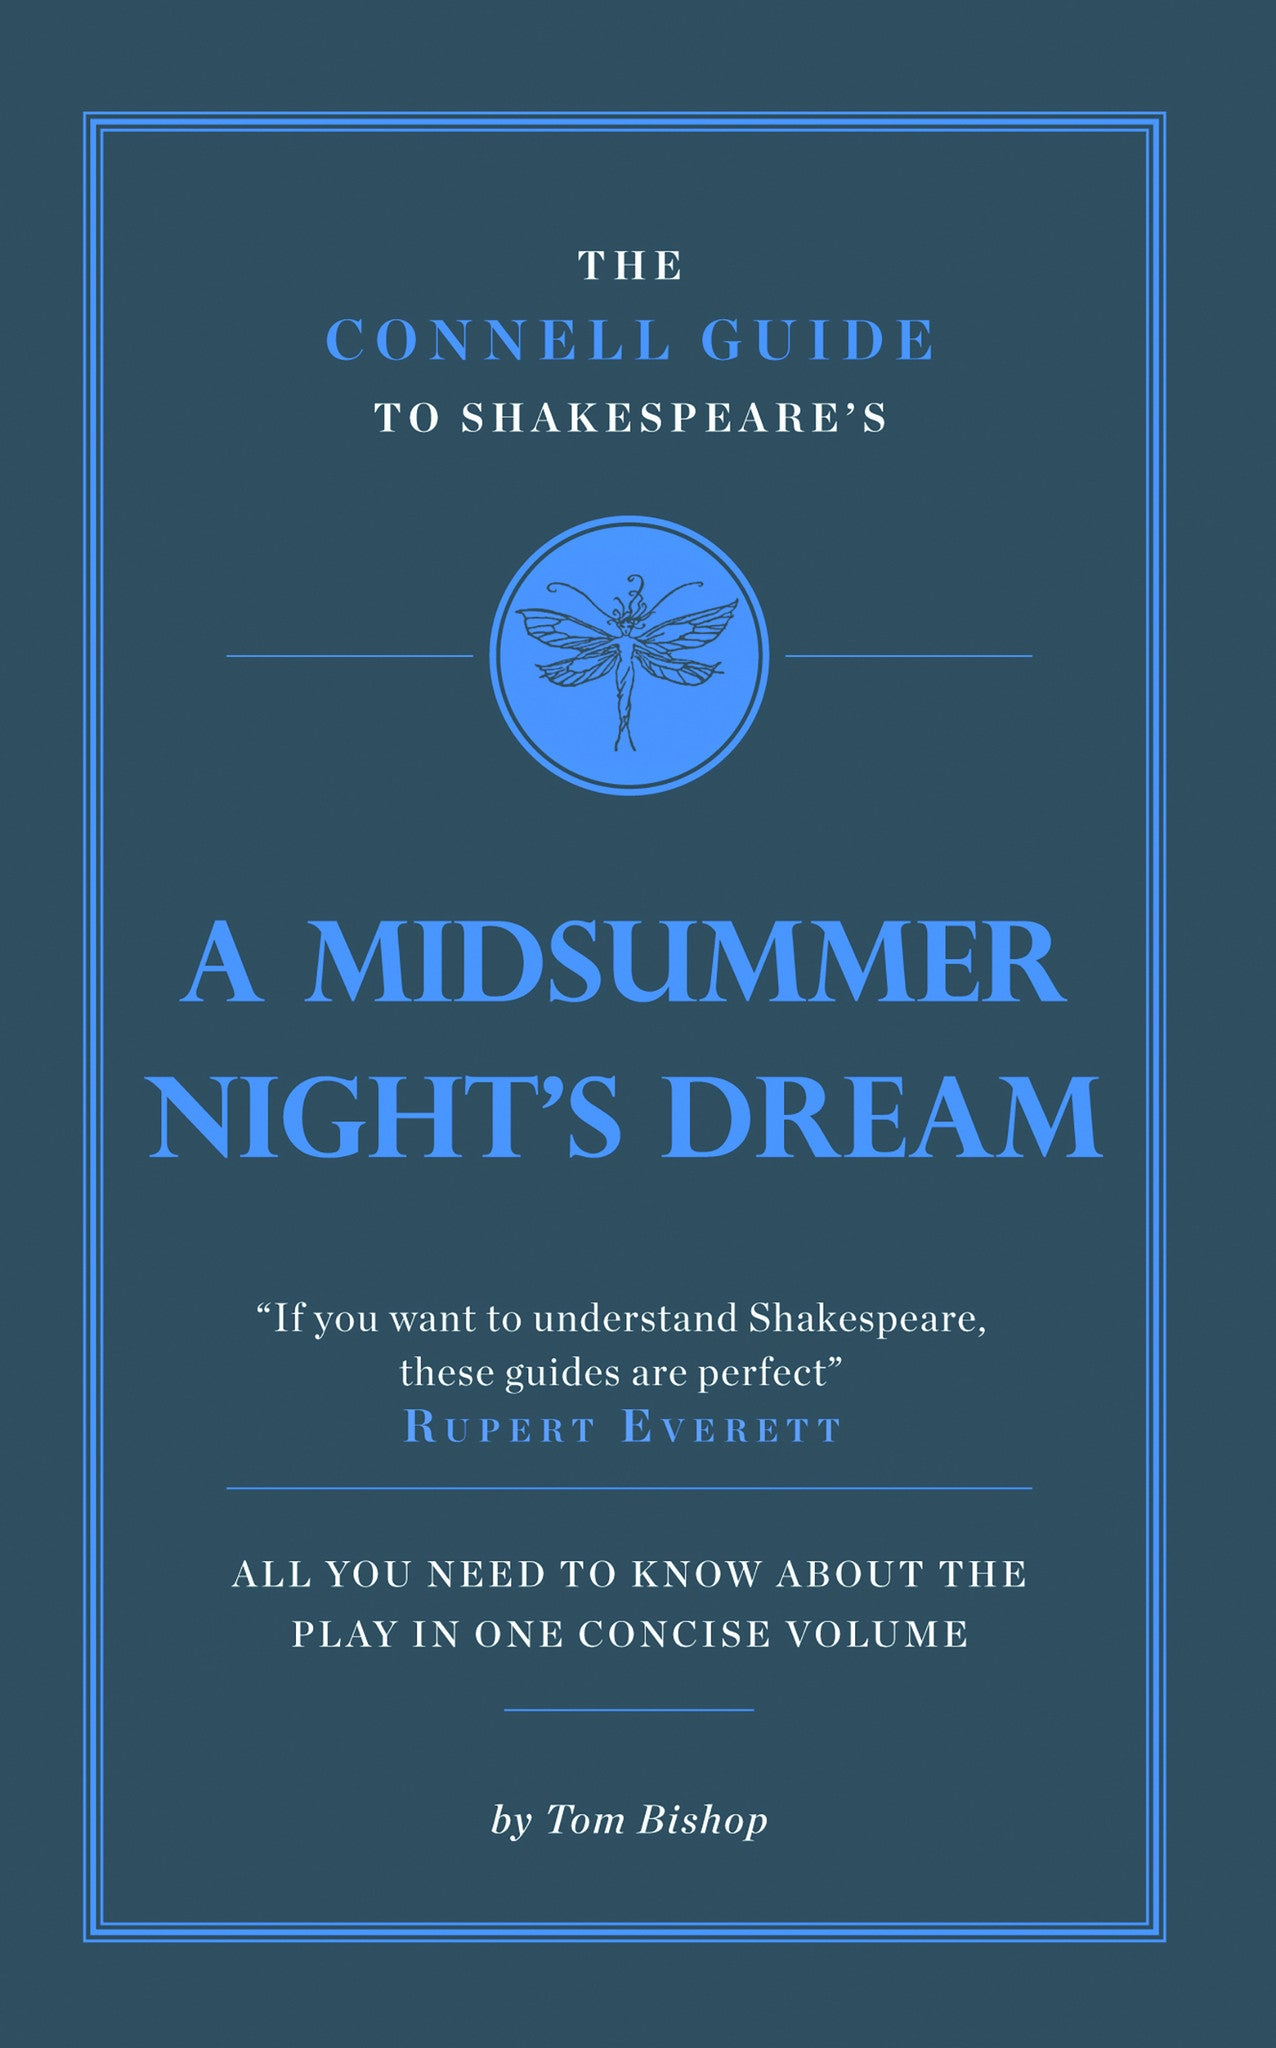 """A Midsummer Night's Dream"" by William Shakespeare Essay Sample"